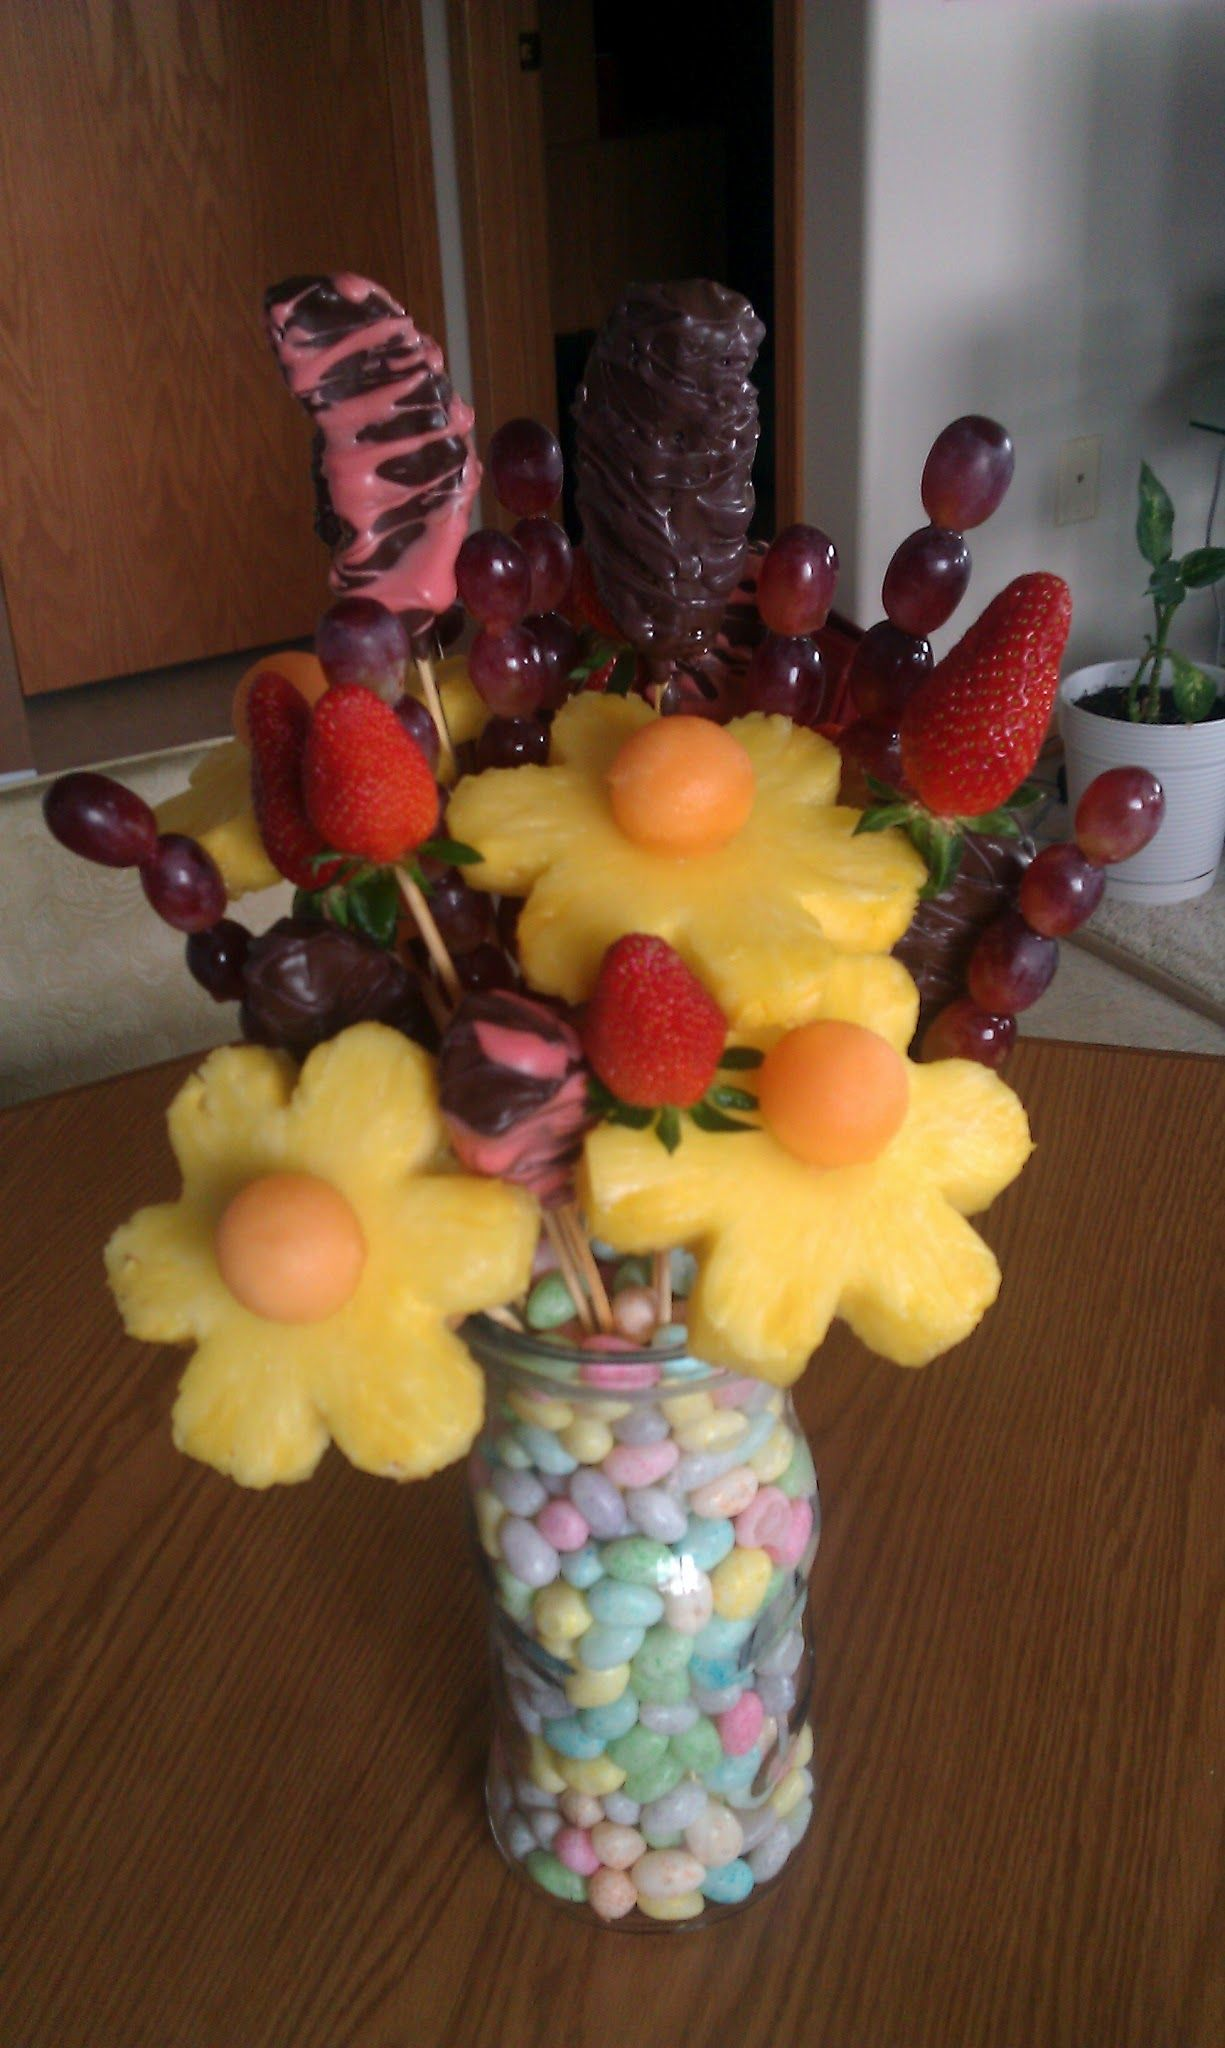 Birthday Bouquet 45.00 Value Creation made by Jenuine